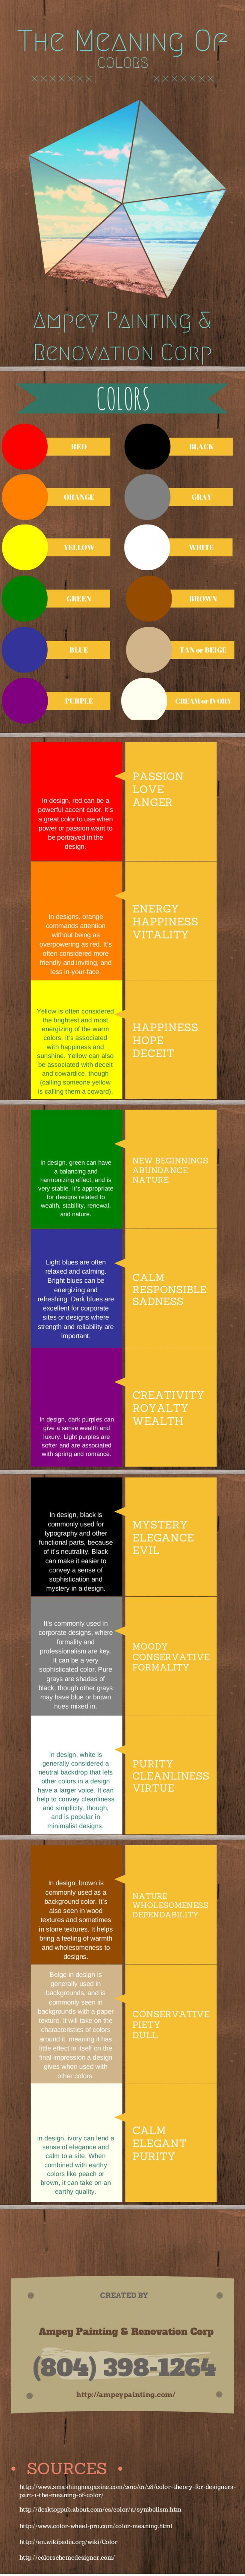 17 Best Ideas About Meaning Of Colors On Pinterest